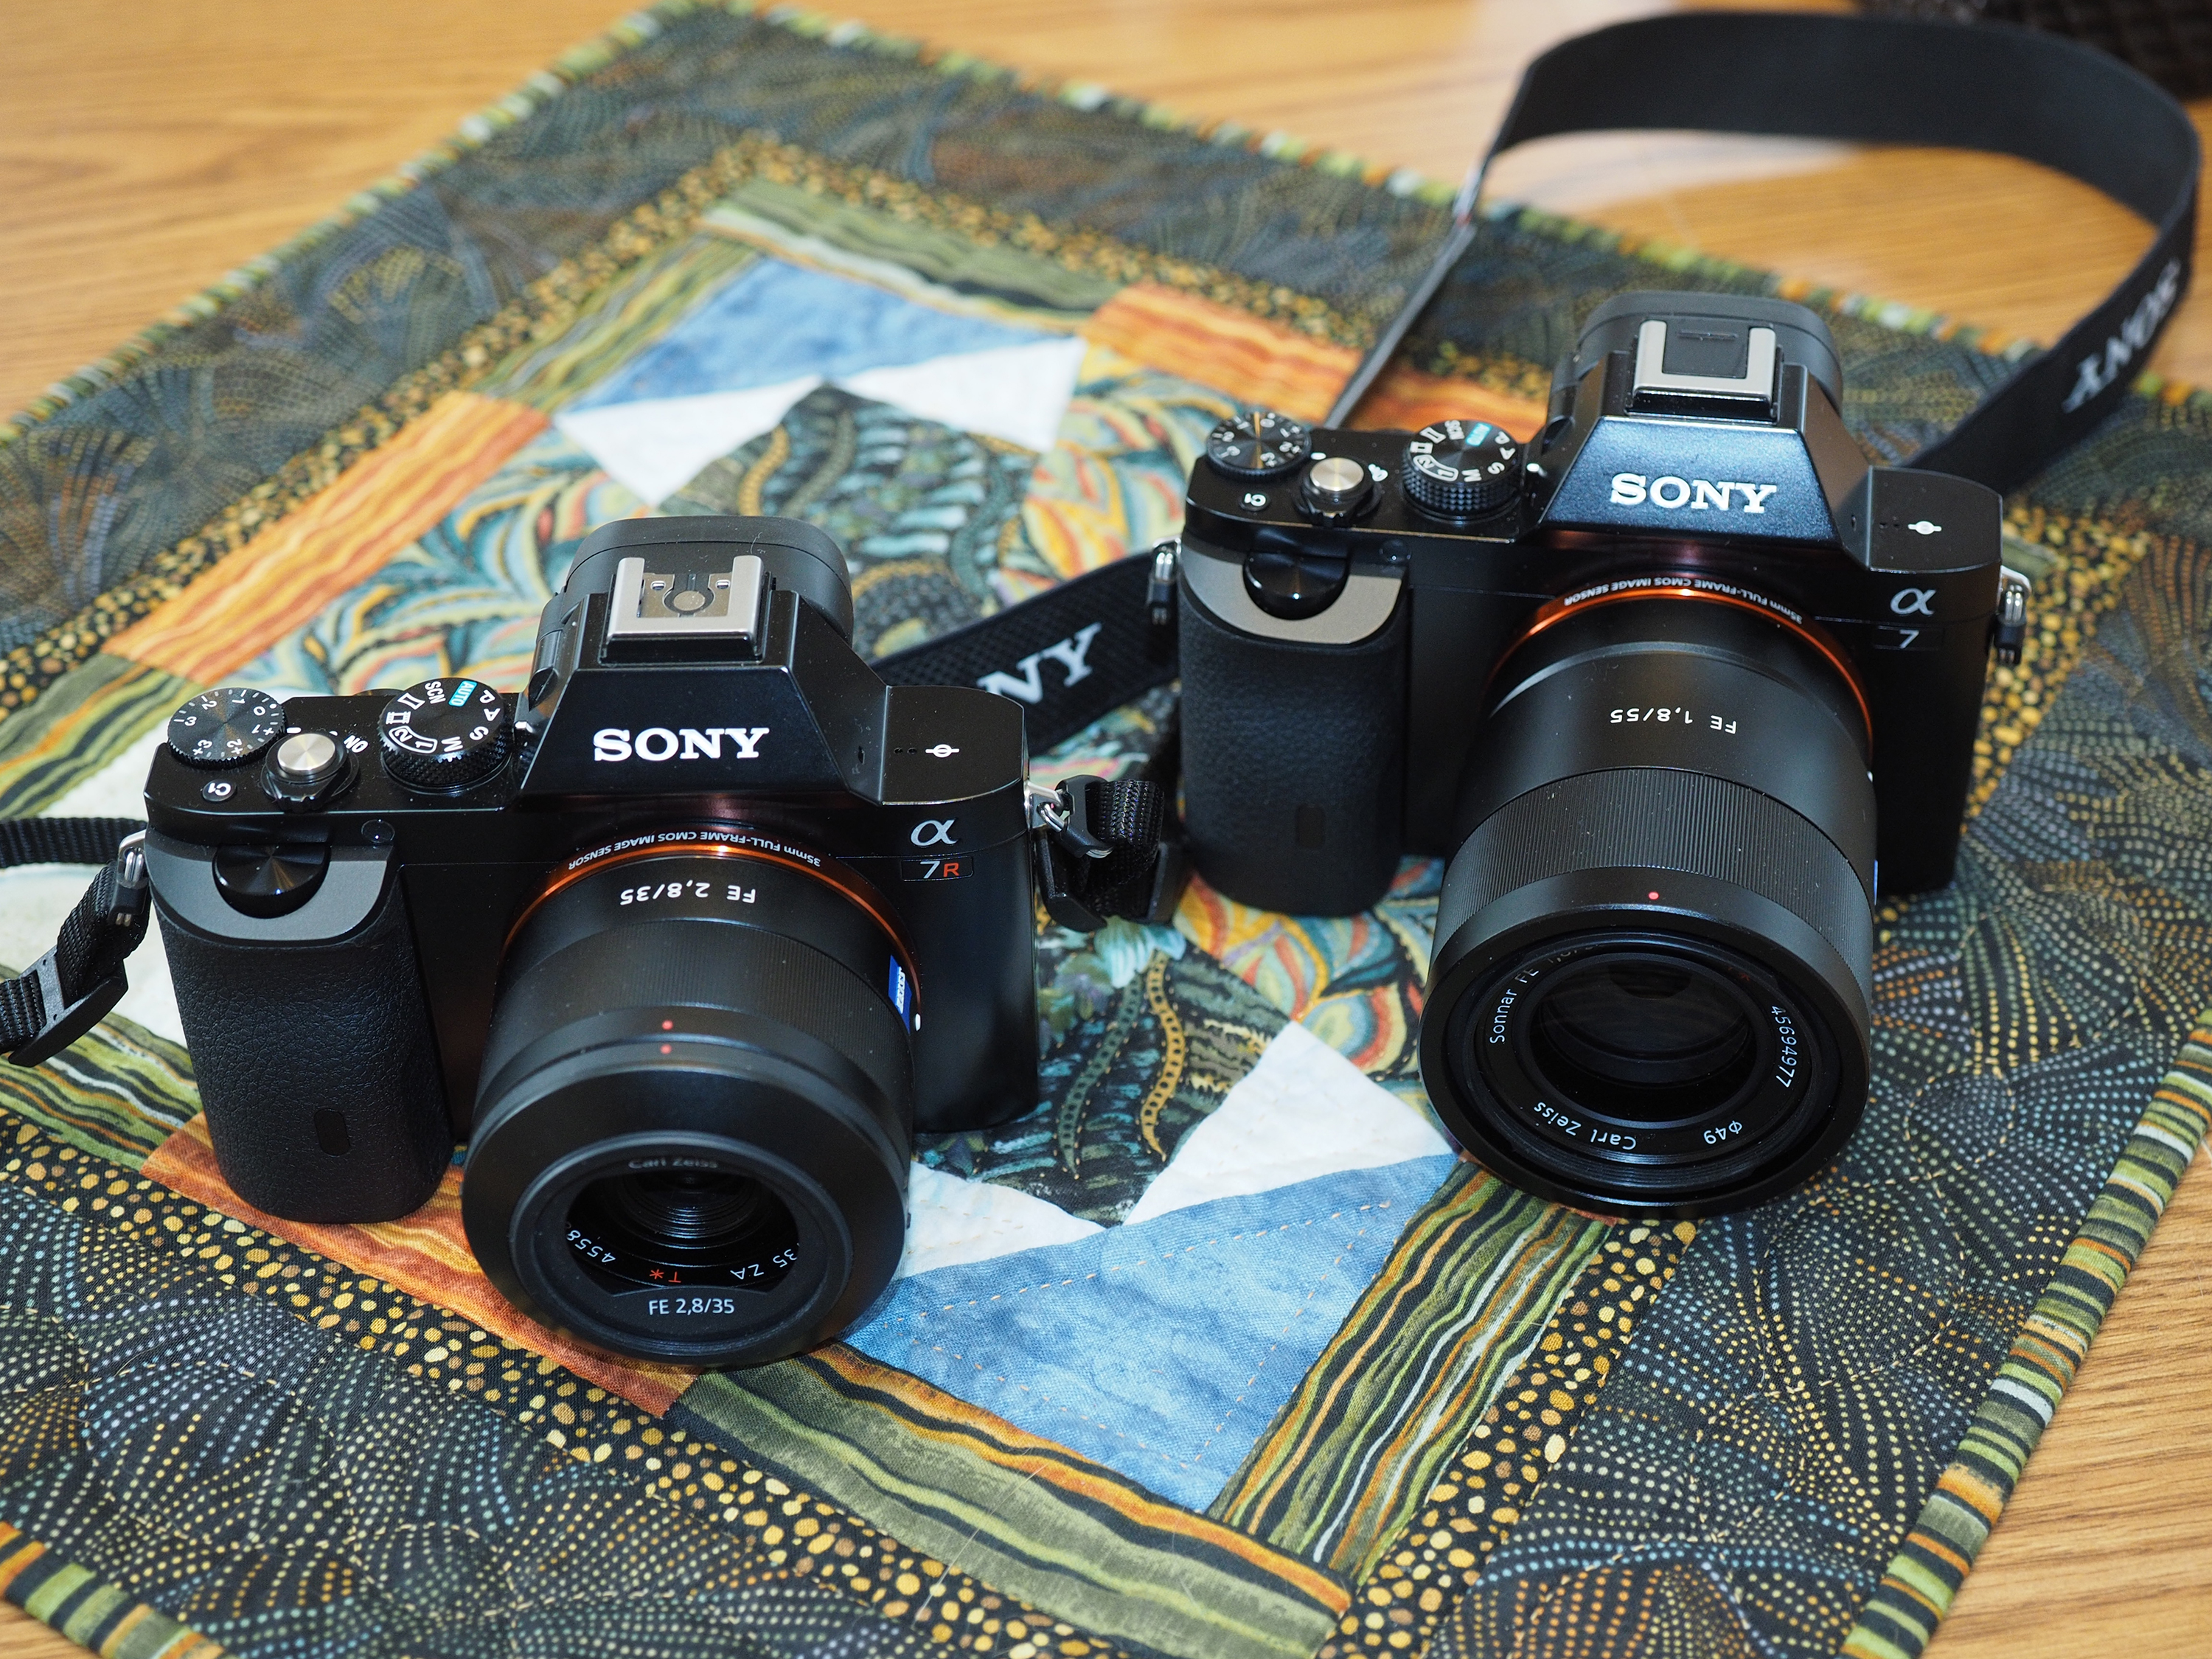 Sony a7 Review: Catapulting the Mirrorless Market - DigitalCameraReview